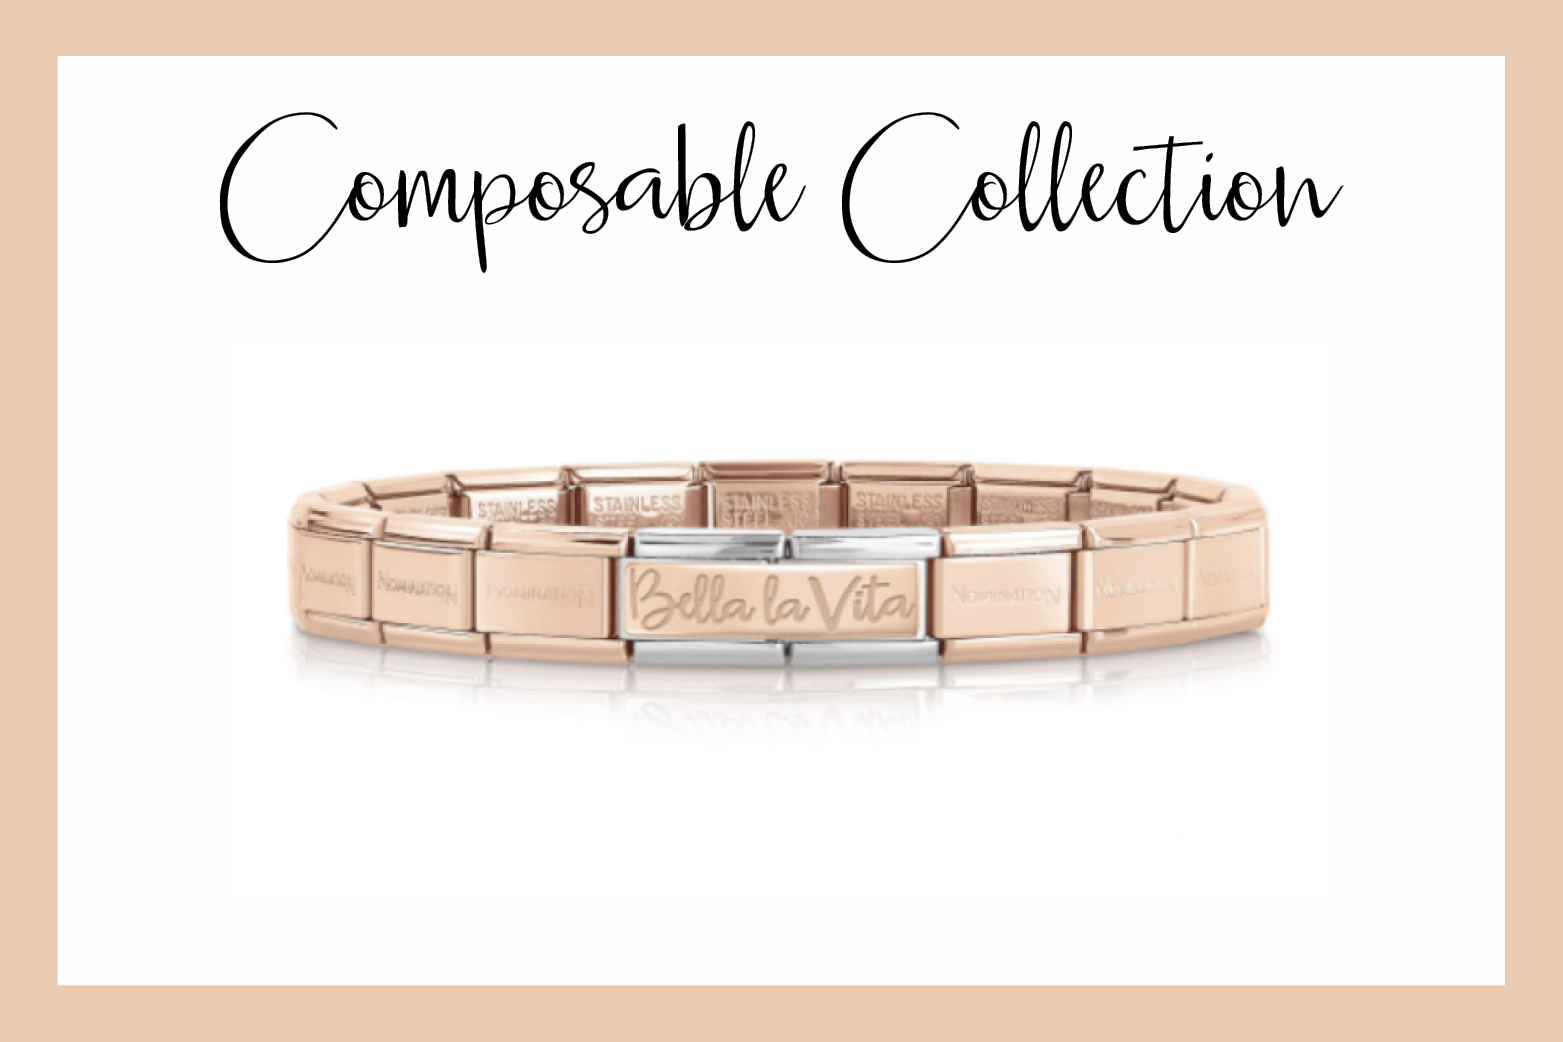 Composable Bracelet with Bella La Vita double Link in rose gold